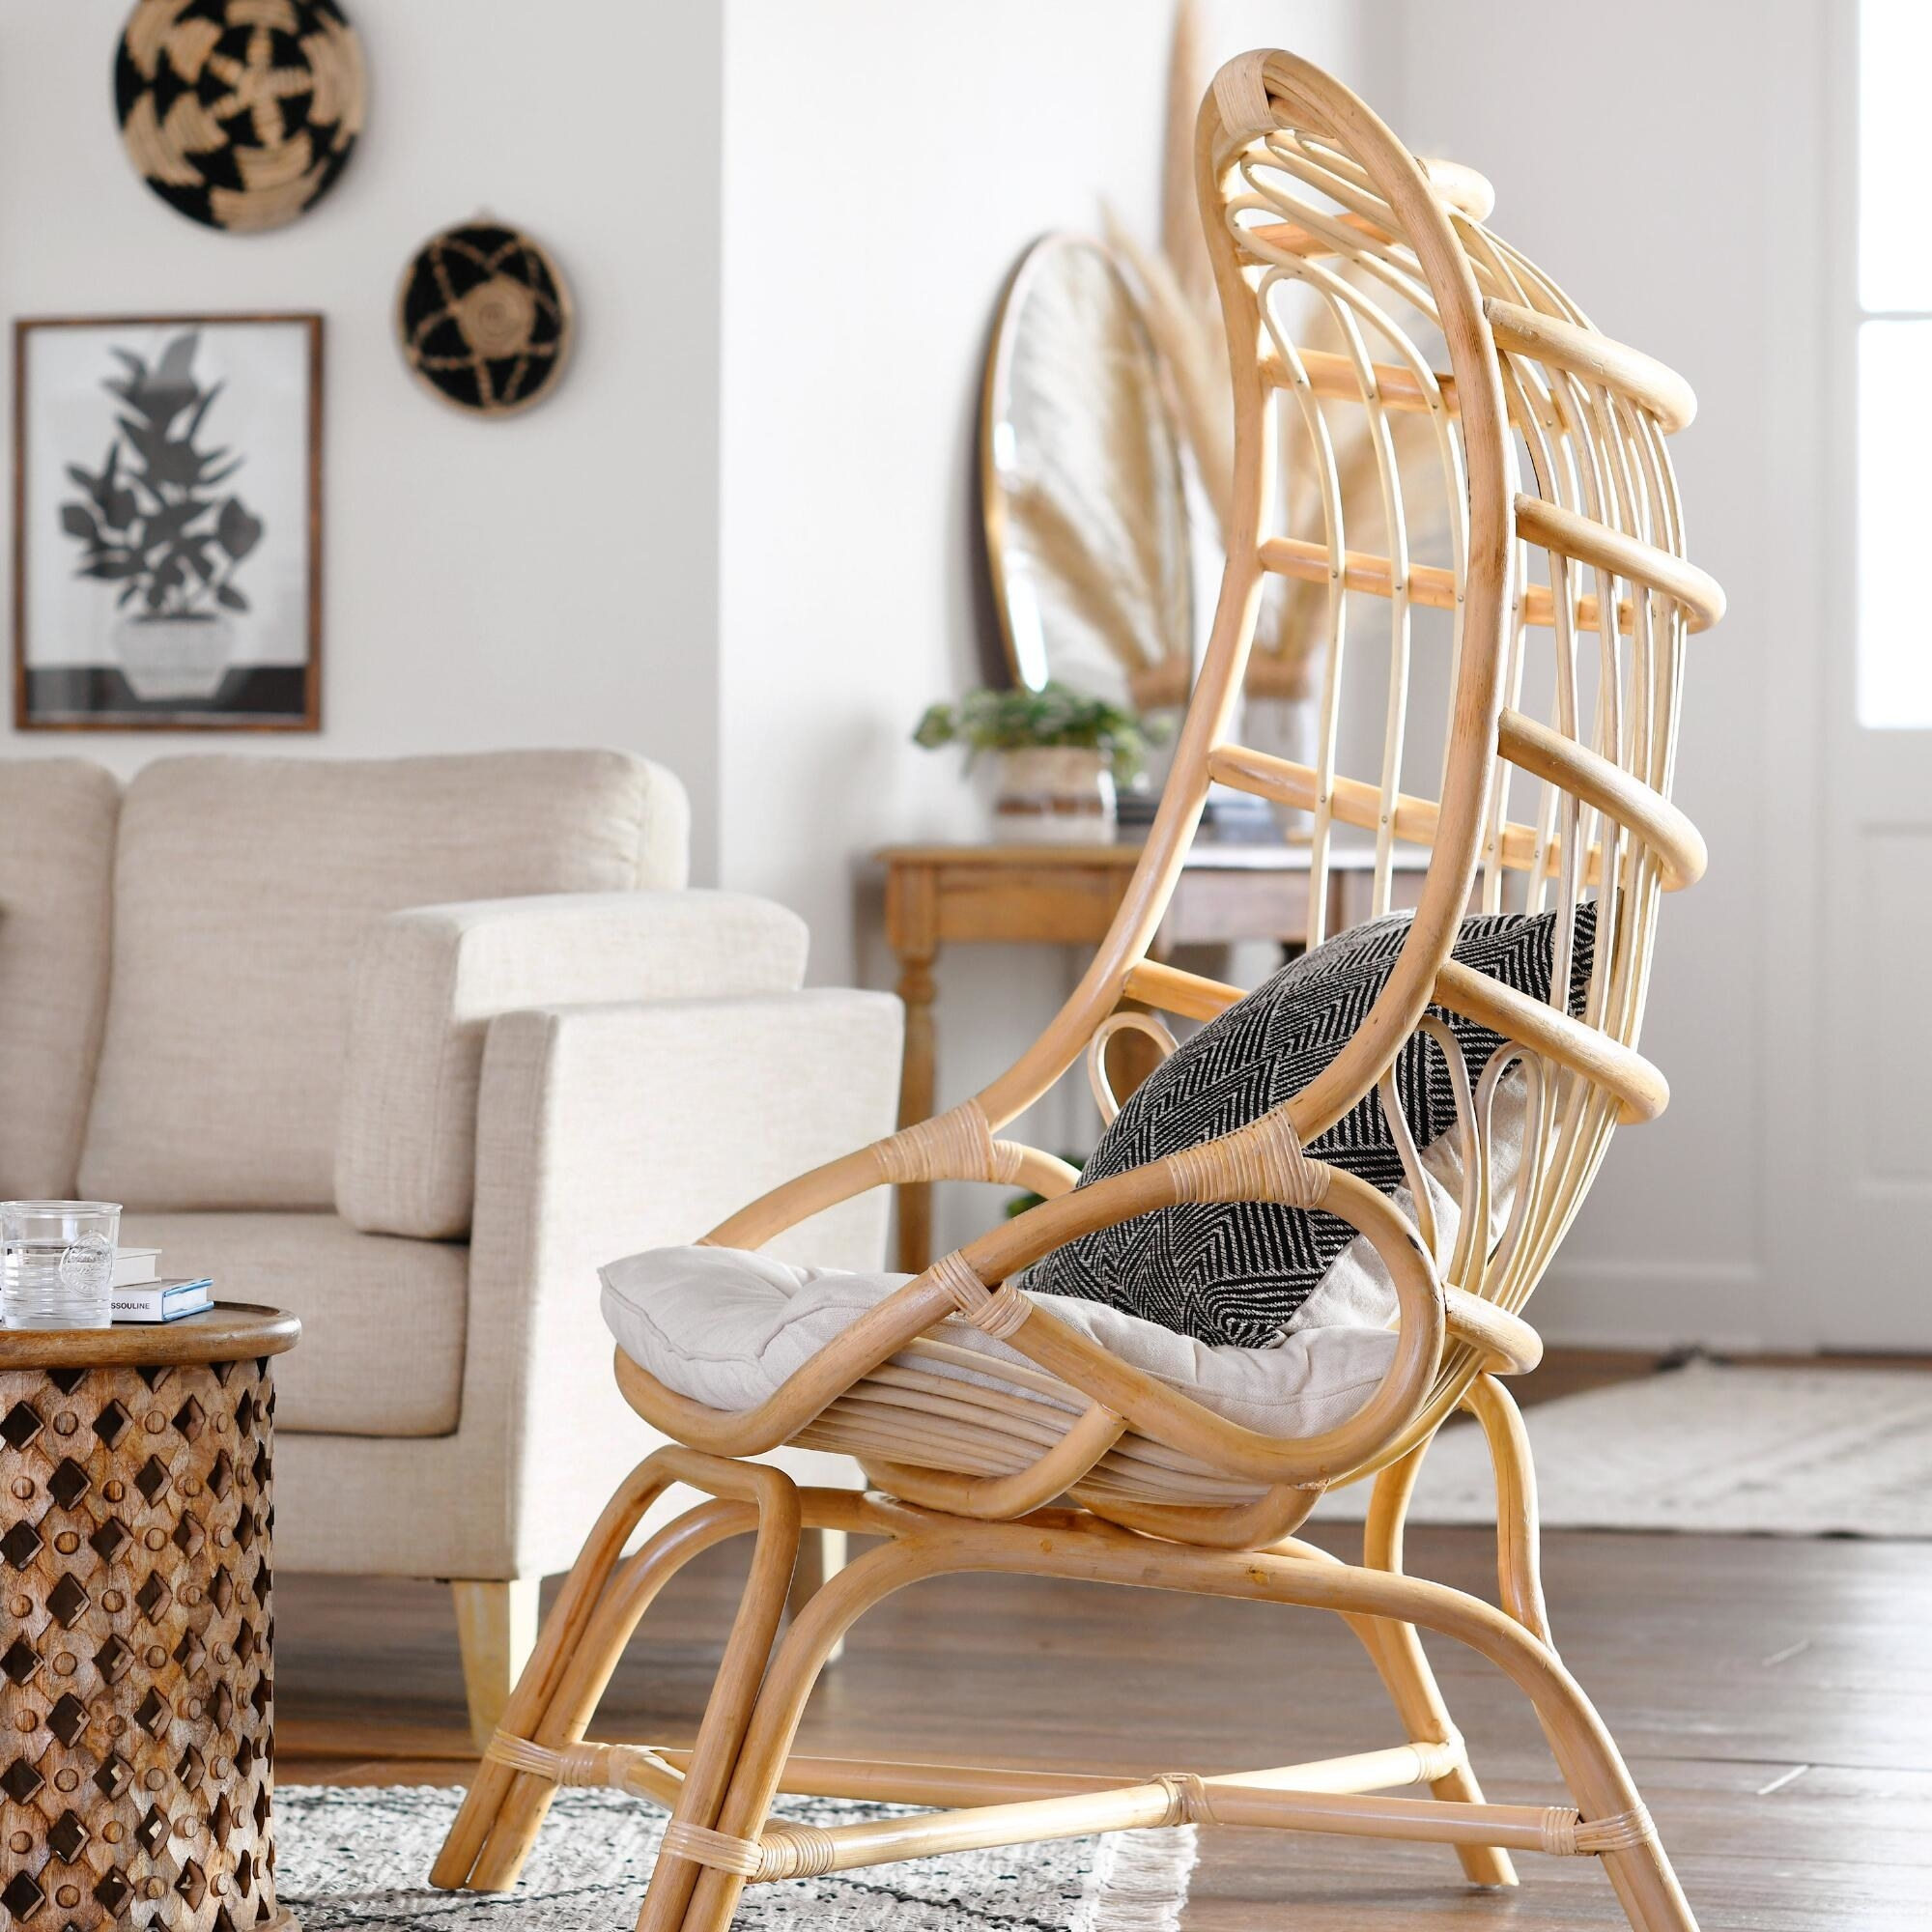 The cocoon chair made out of wood with a curved back design and a cushion and pillow inside